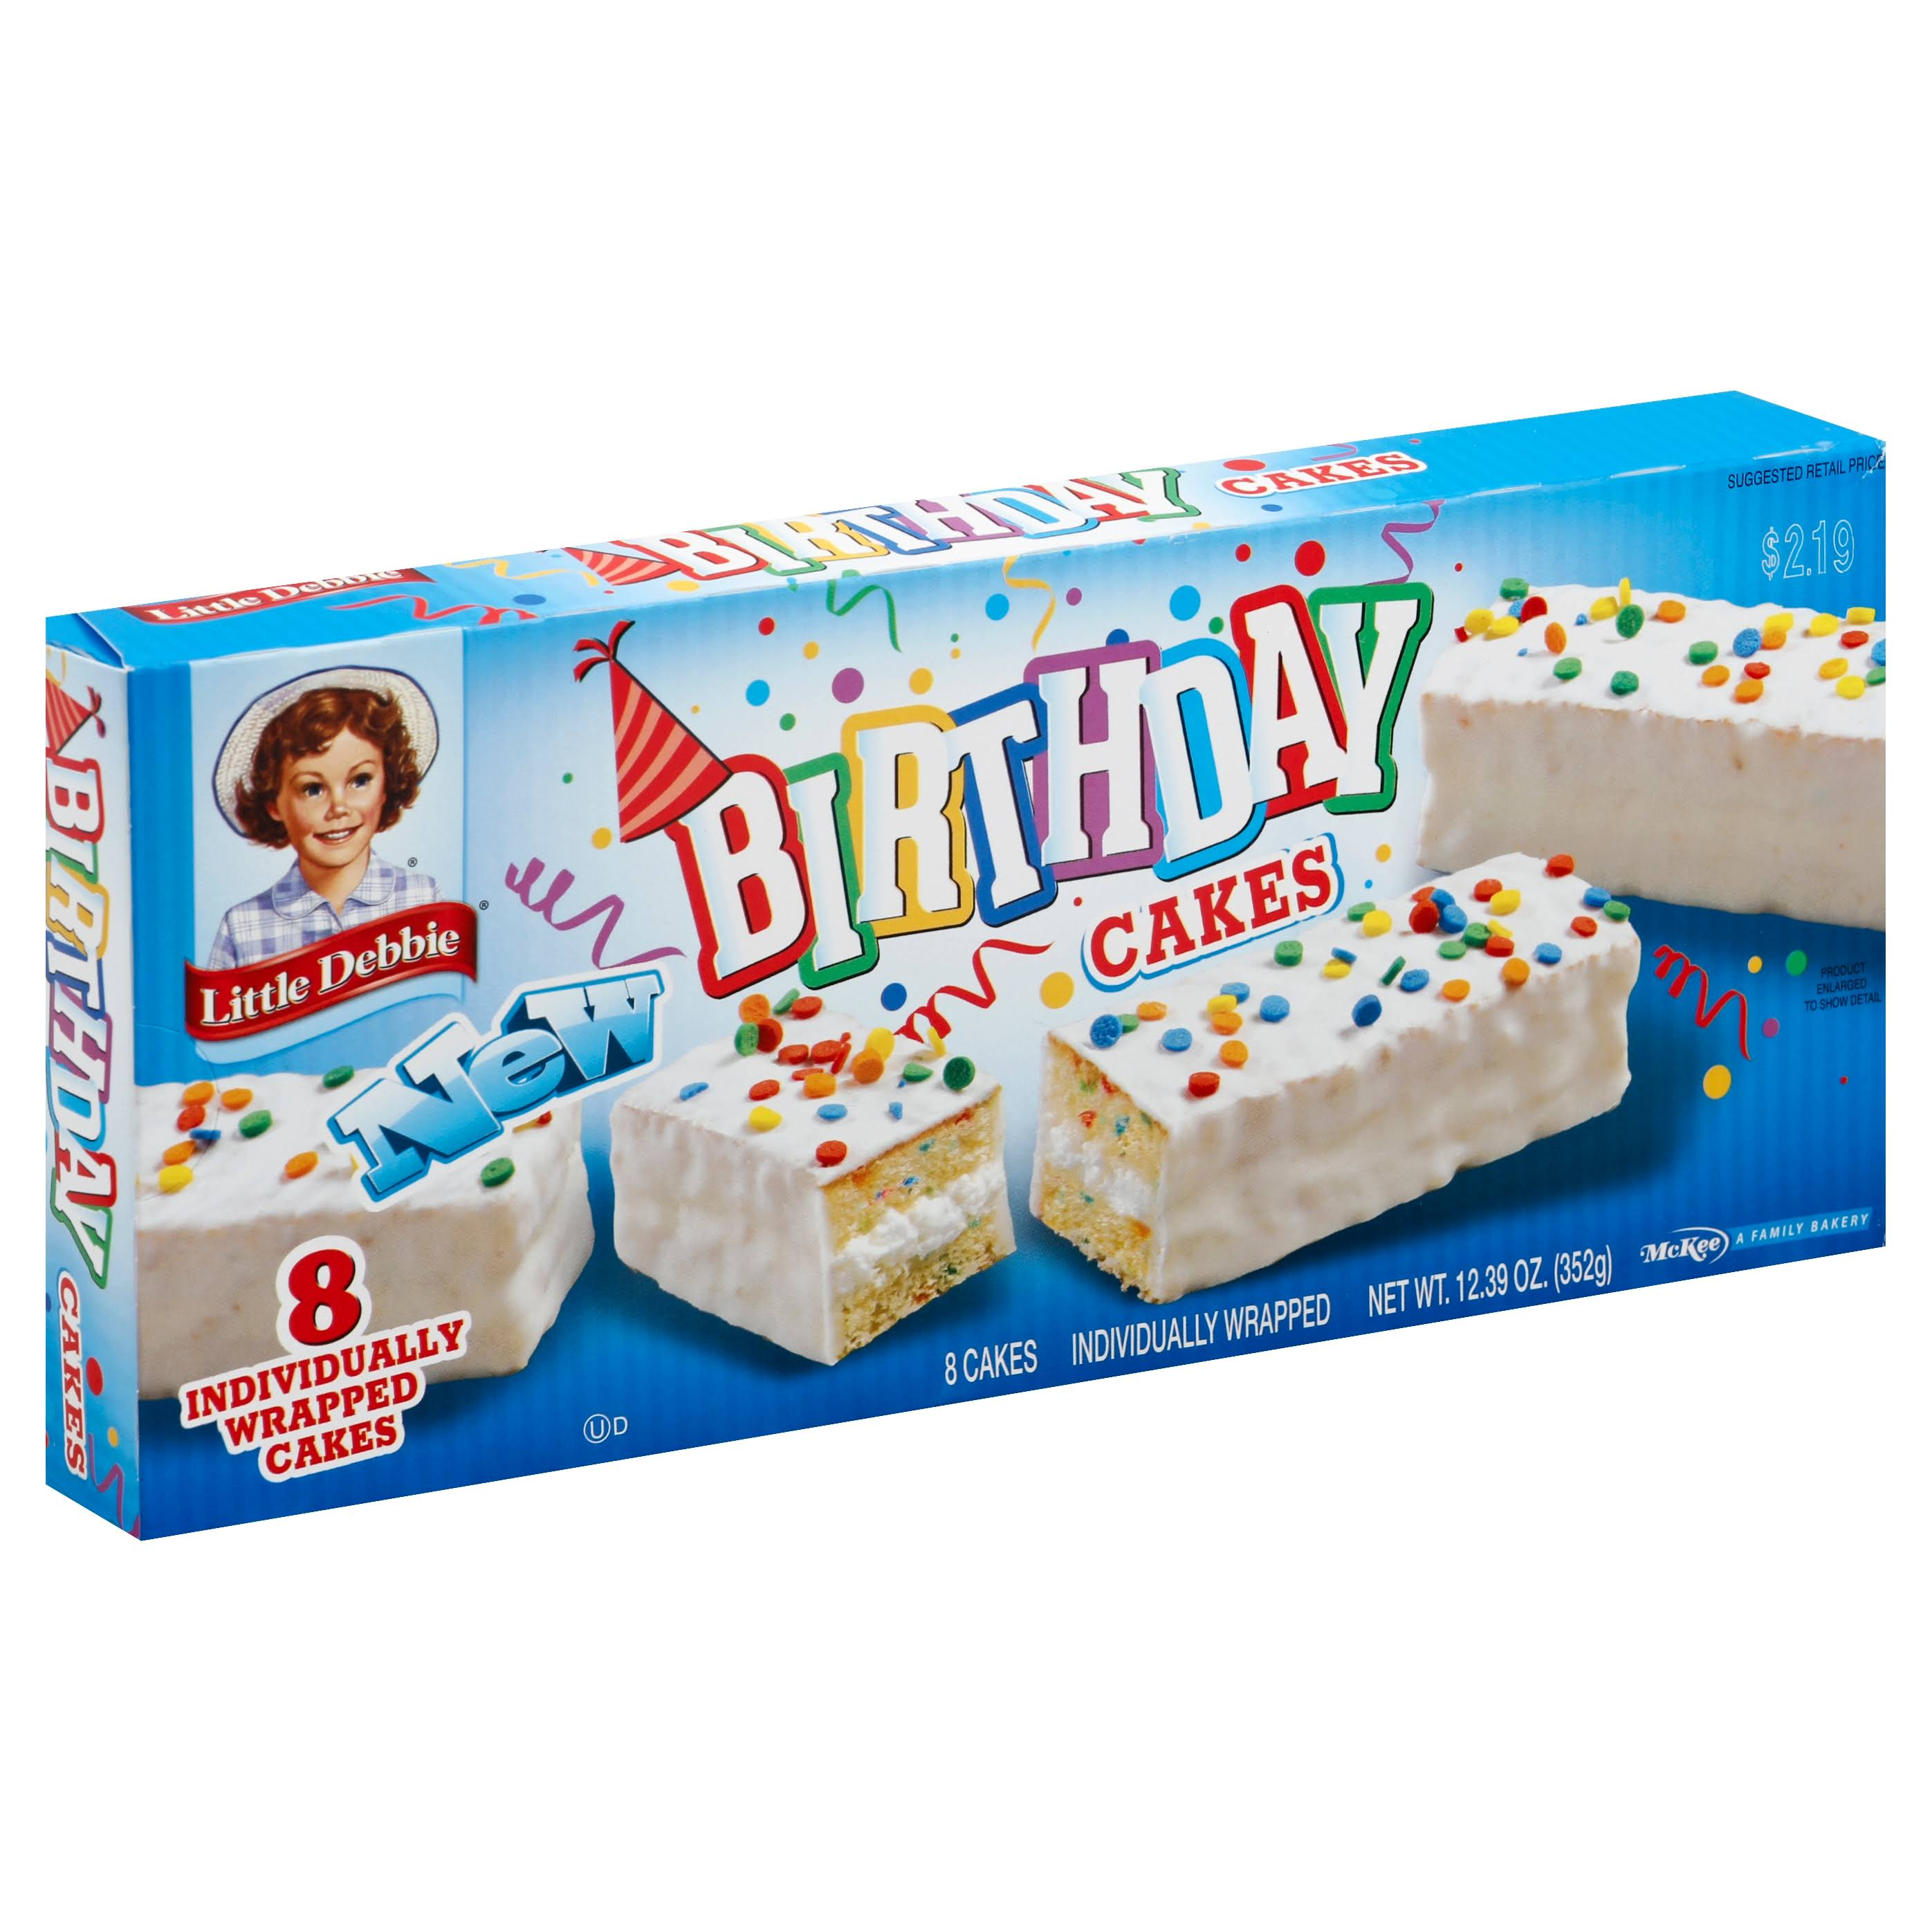 Little Debbie Birthday Cakes - 8 cakes, 12.39 oz